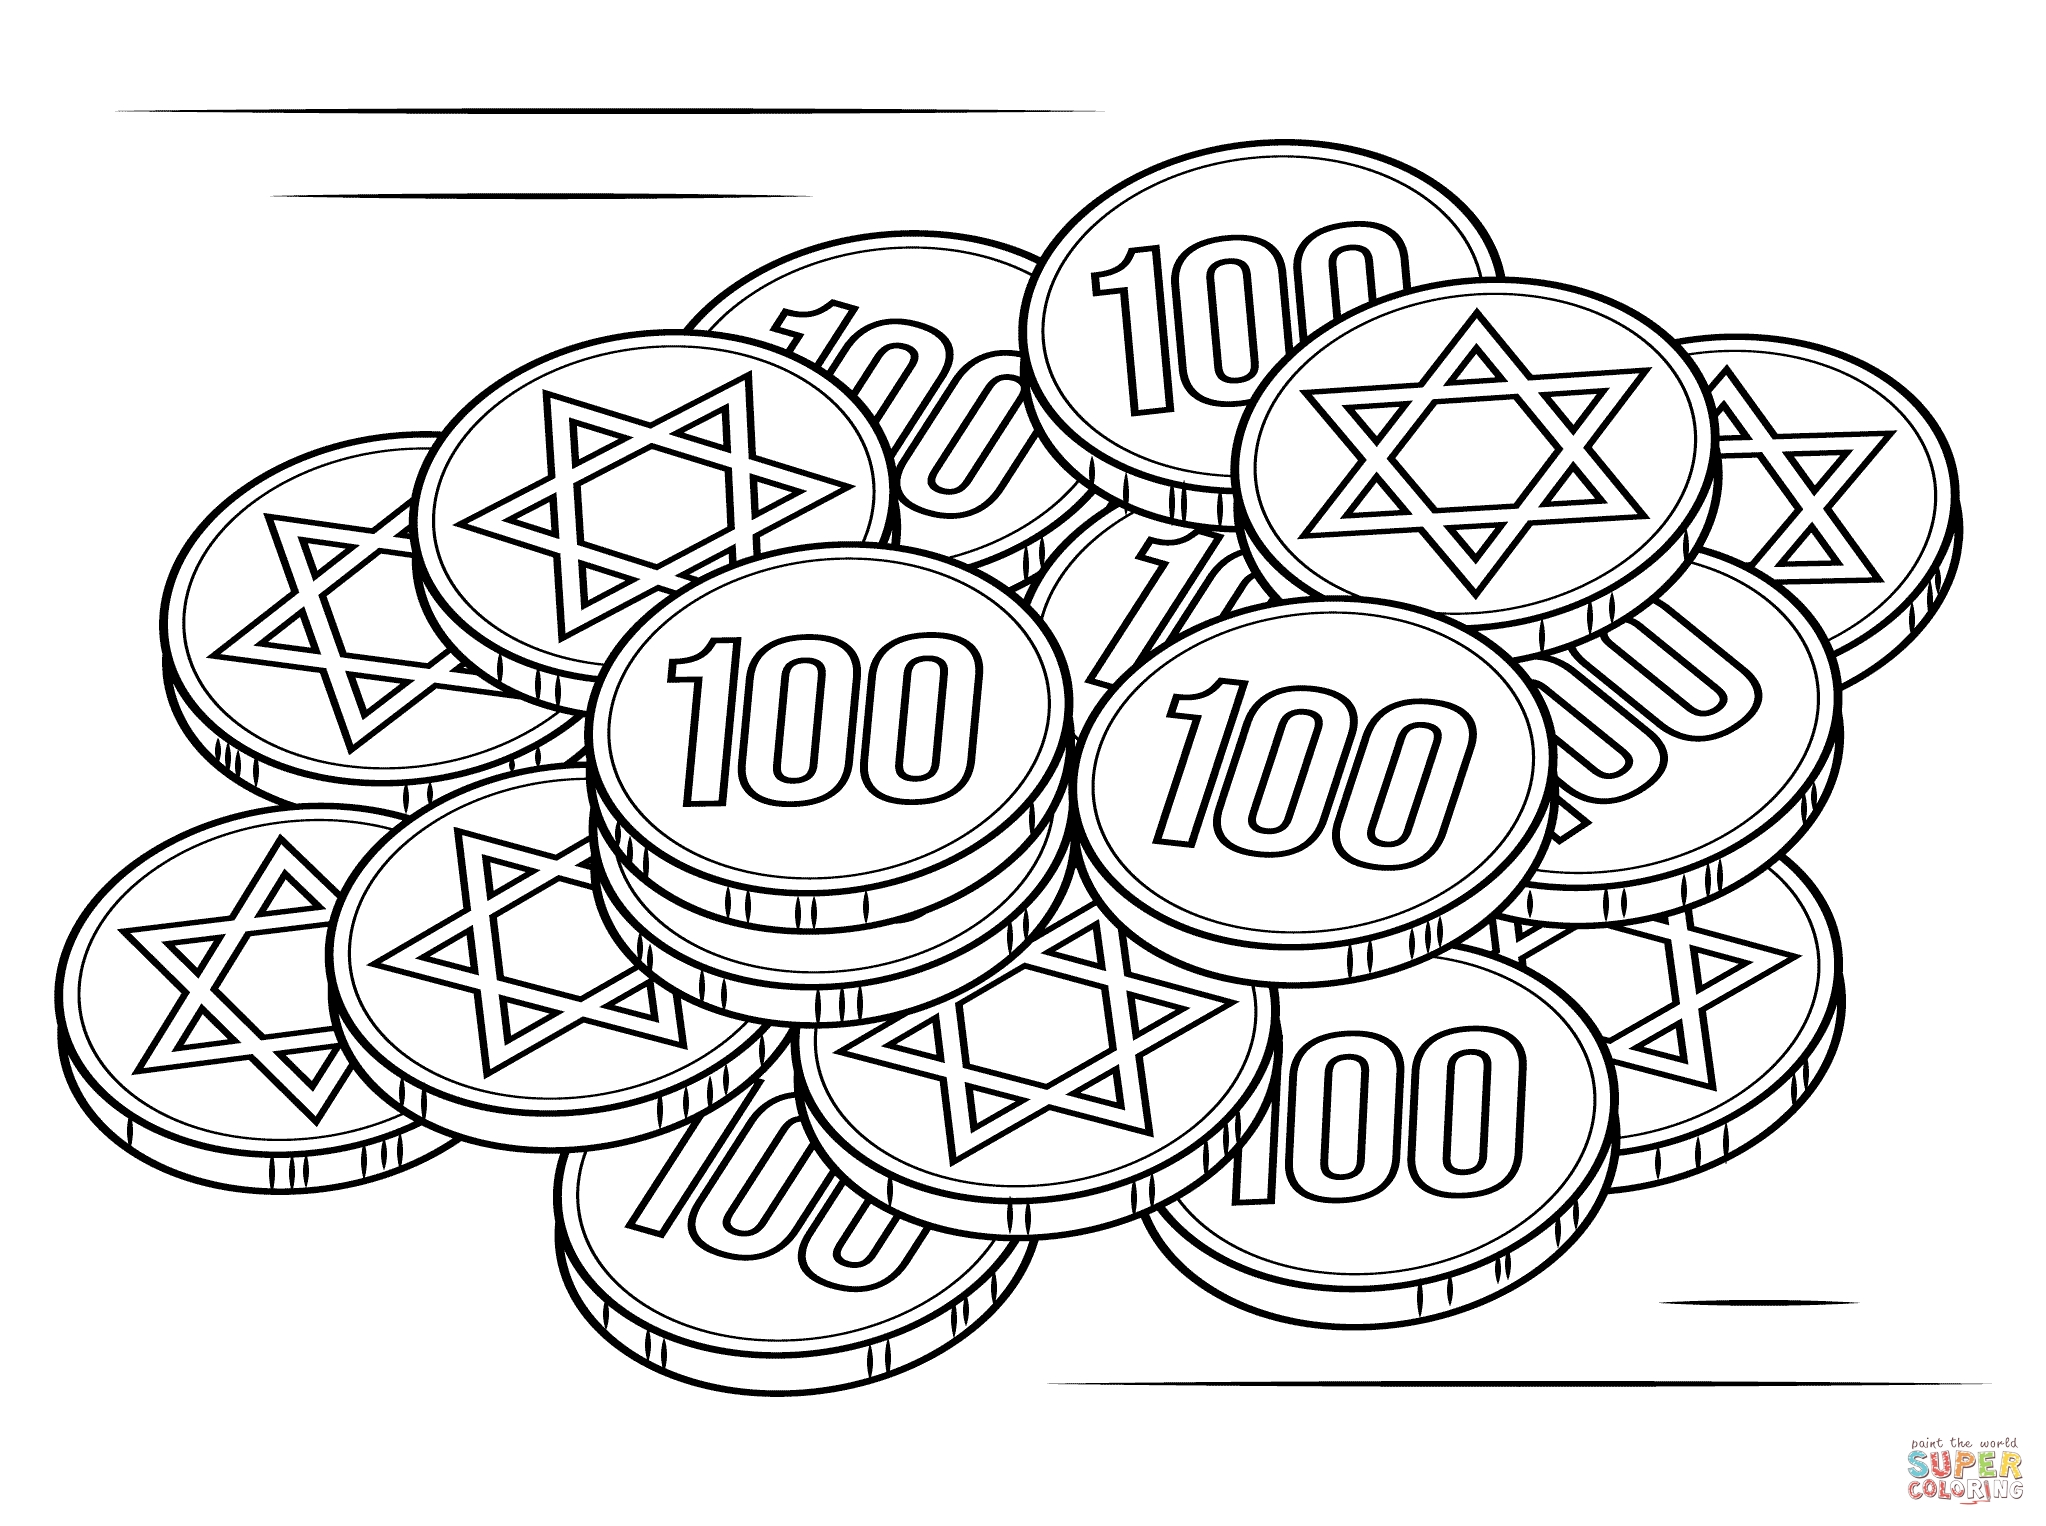 hanukkah coloring pages printable - coloring pages for hanukkah